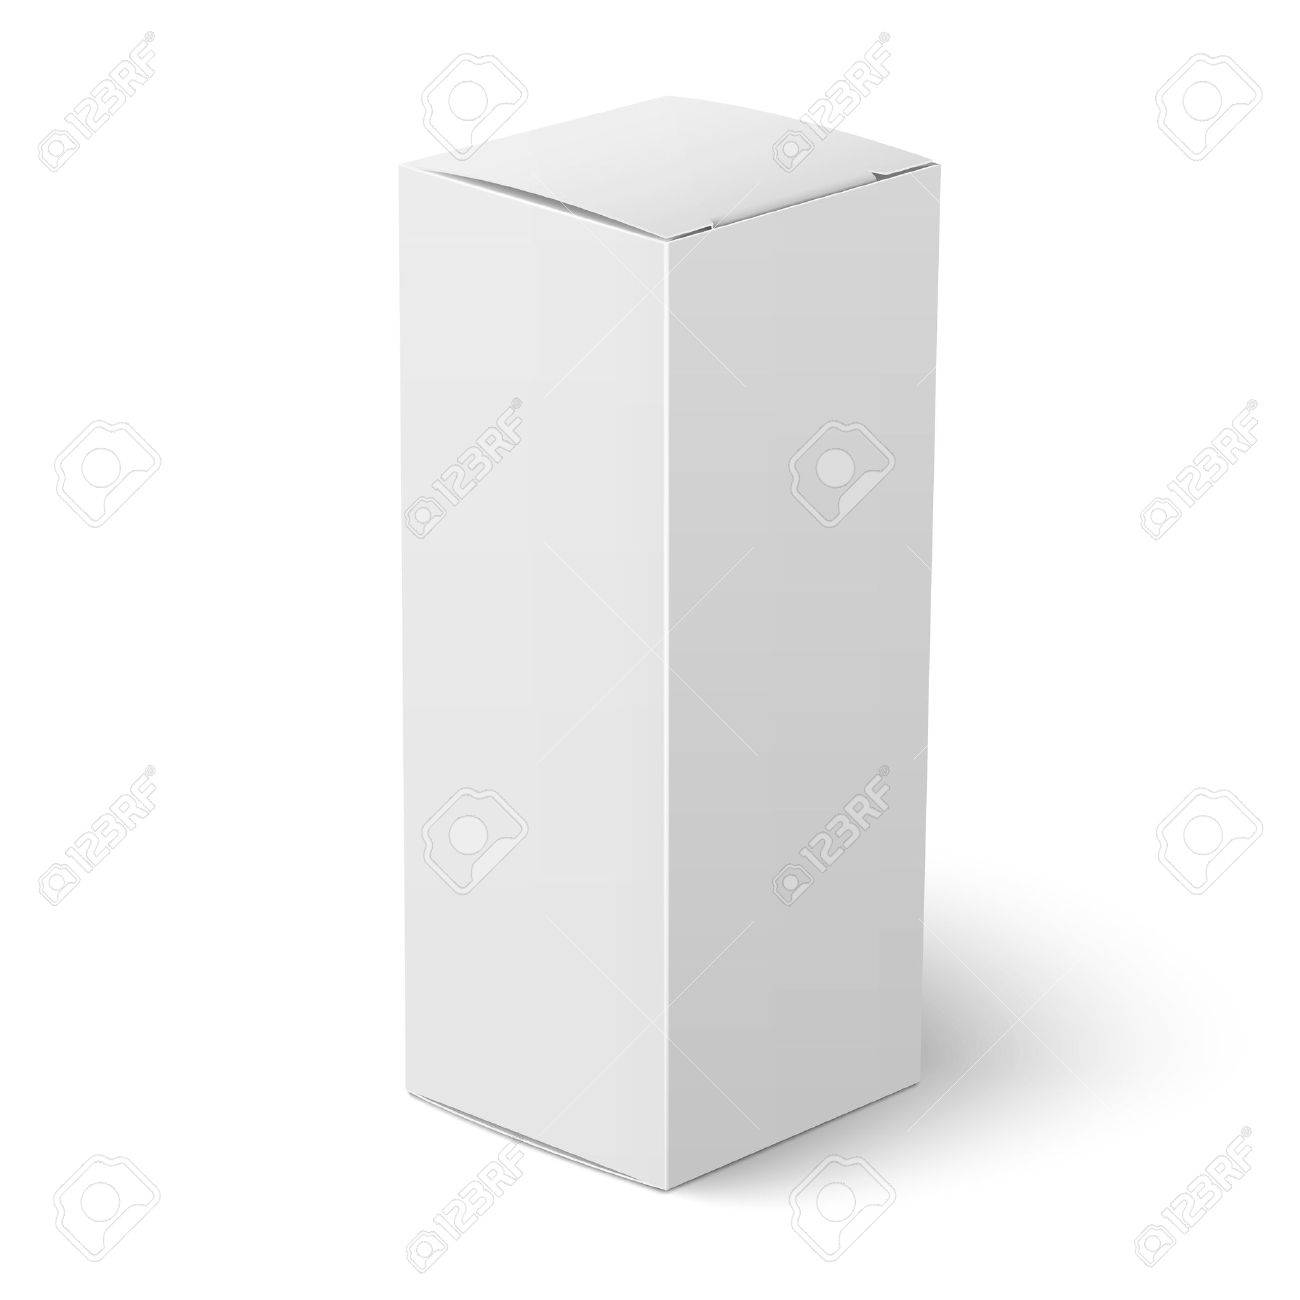 white cardboard box texture. blank vertical paper or cardboard box template standing on white background packaging collection vector illustration texture